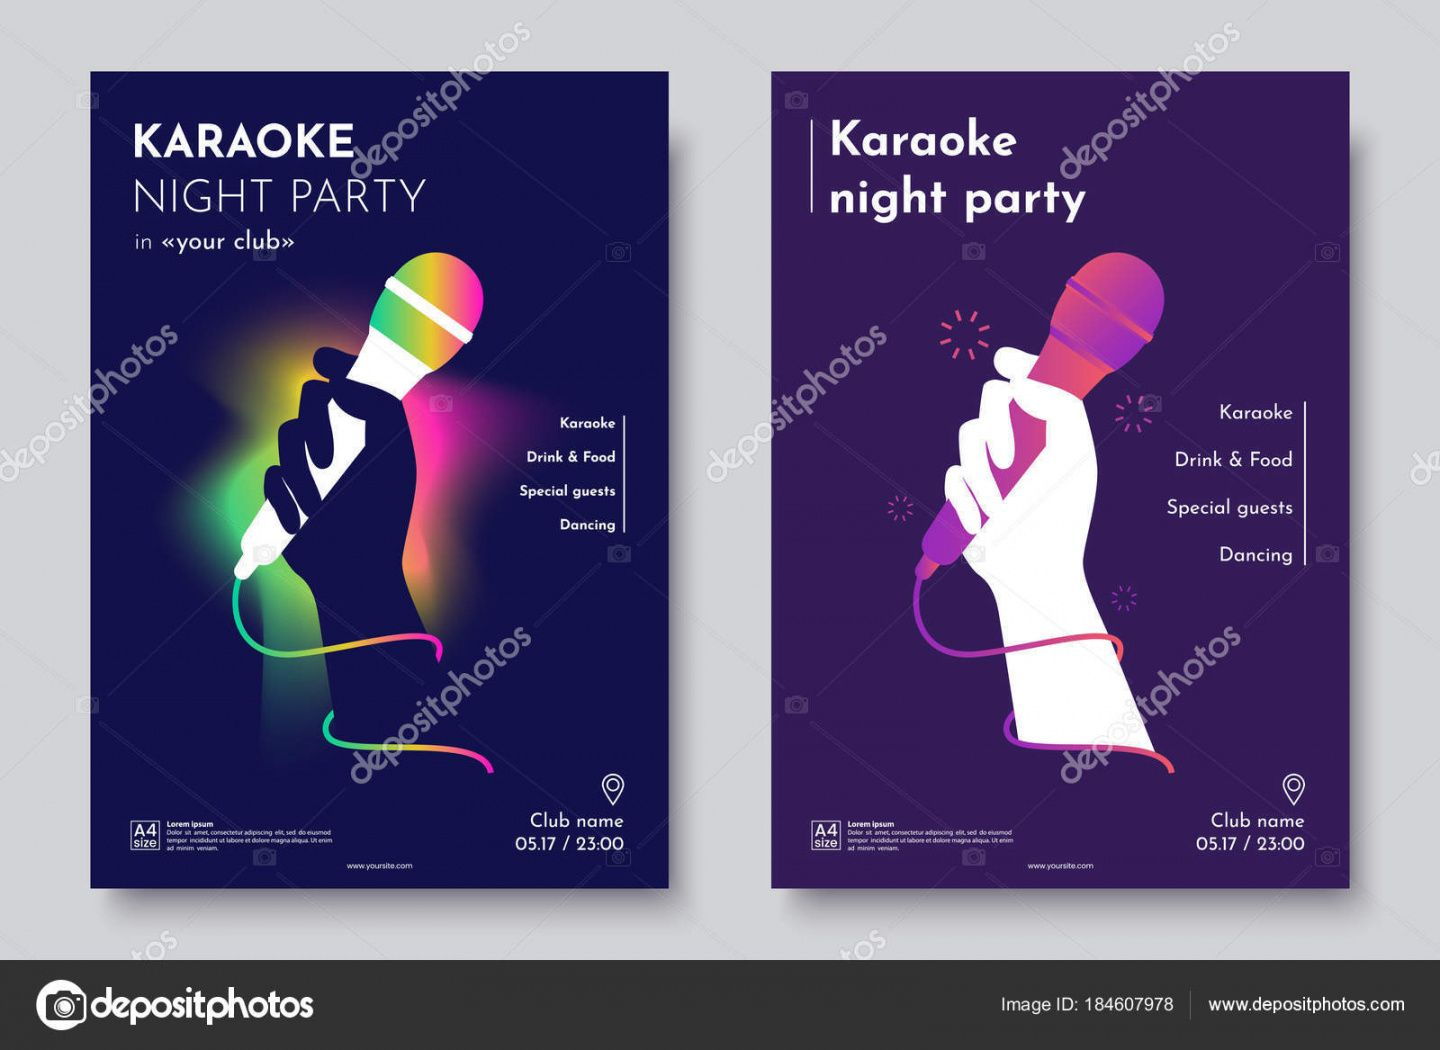 free karaoke party invitation flyer template silhouette of hand with microphone  on an abstract dark background concept for a night club advertising party invitation flyer template pdf